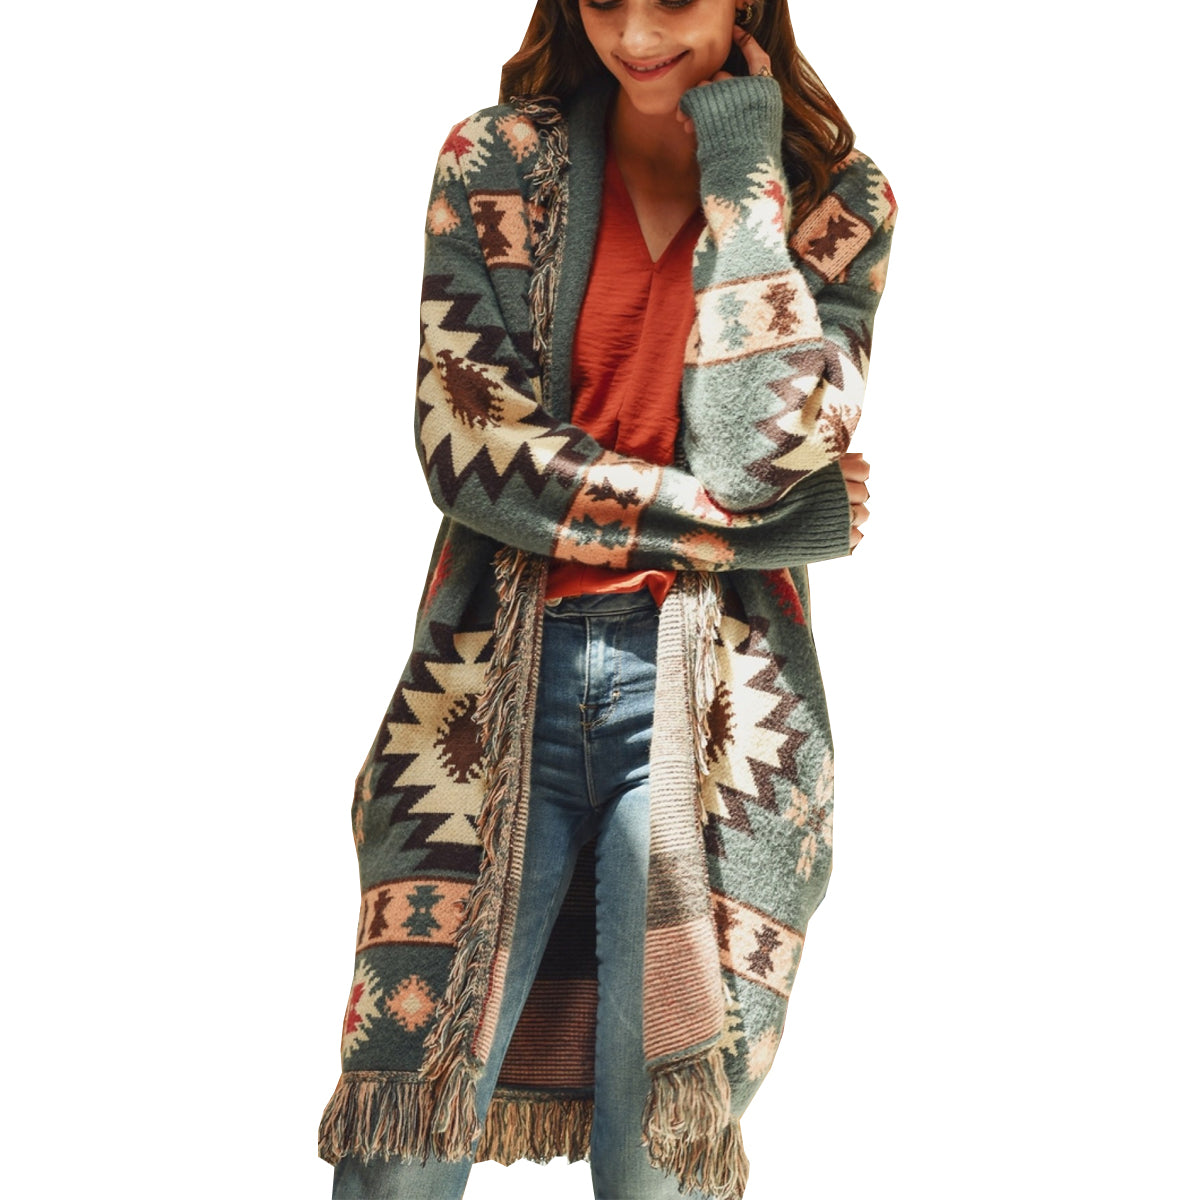 Jodifl Women's Long Sleeve Tribal Print Cardigan - Sage